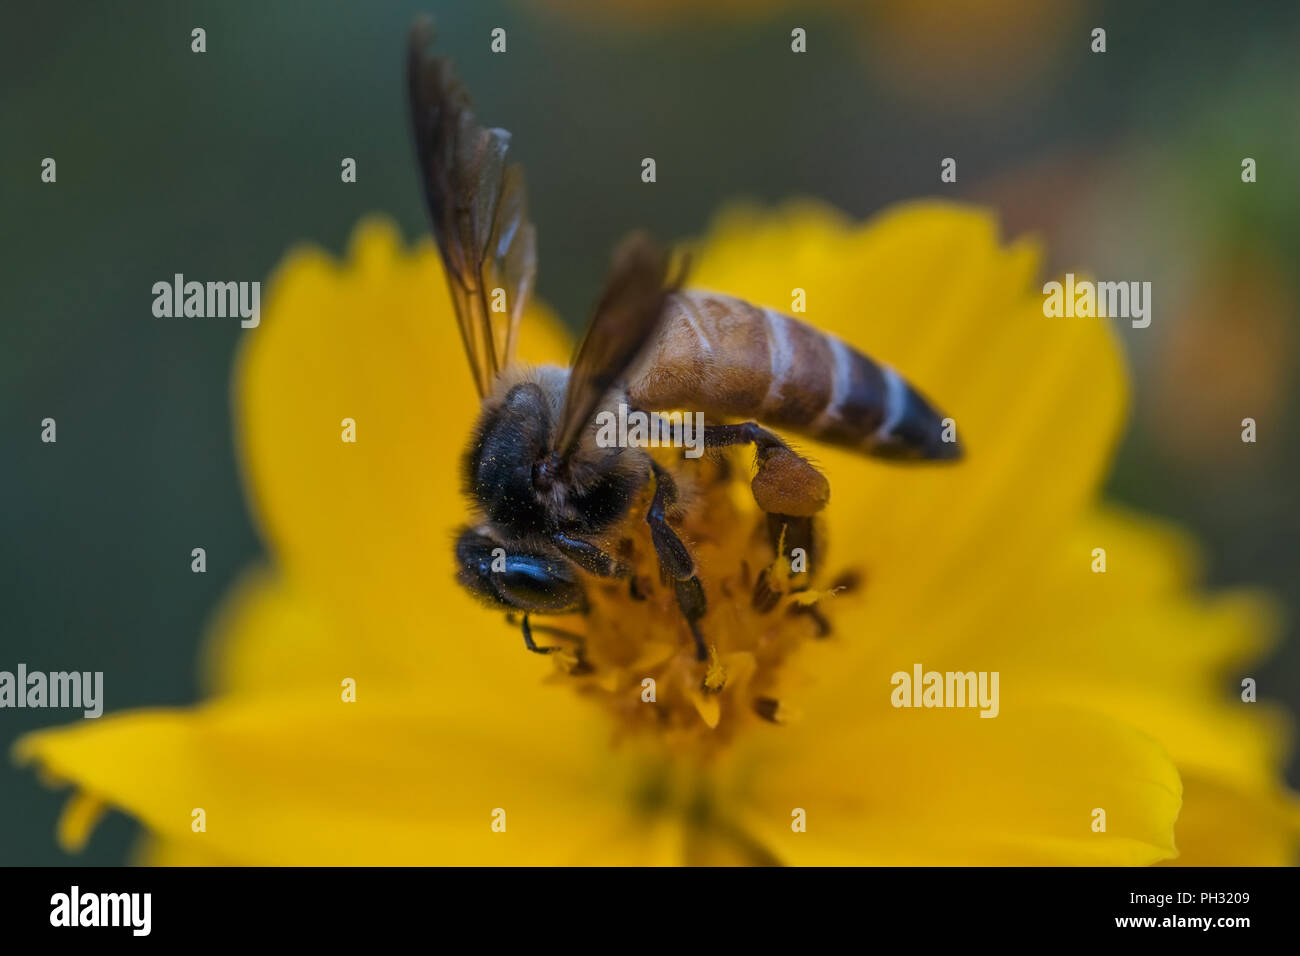 Honey bee pollinating a yellow cosmos flower - Stock Image